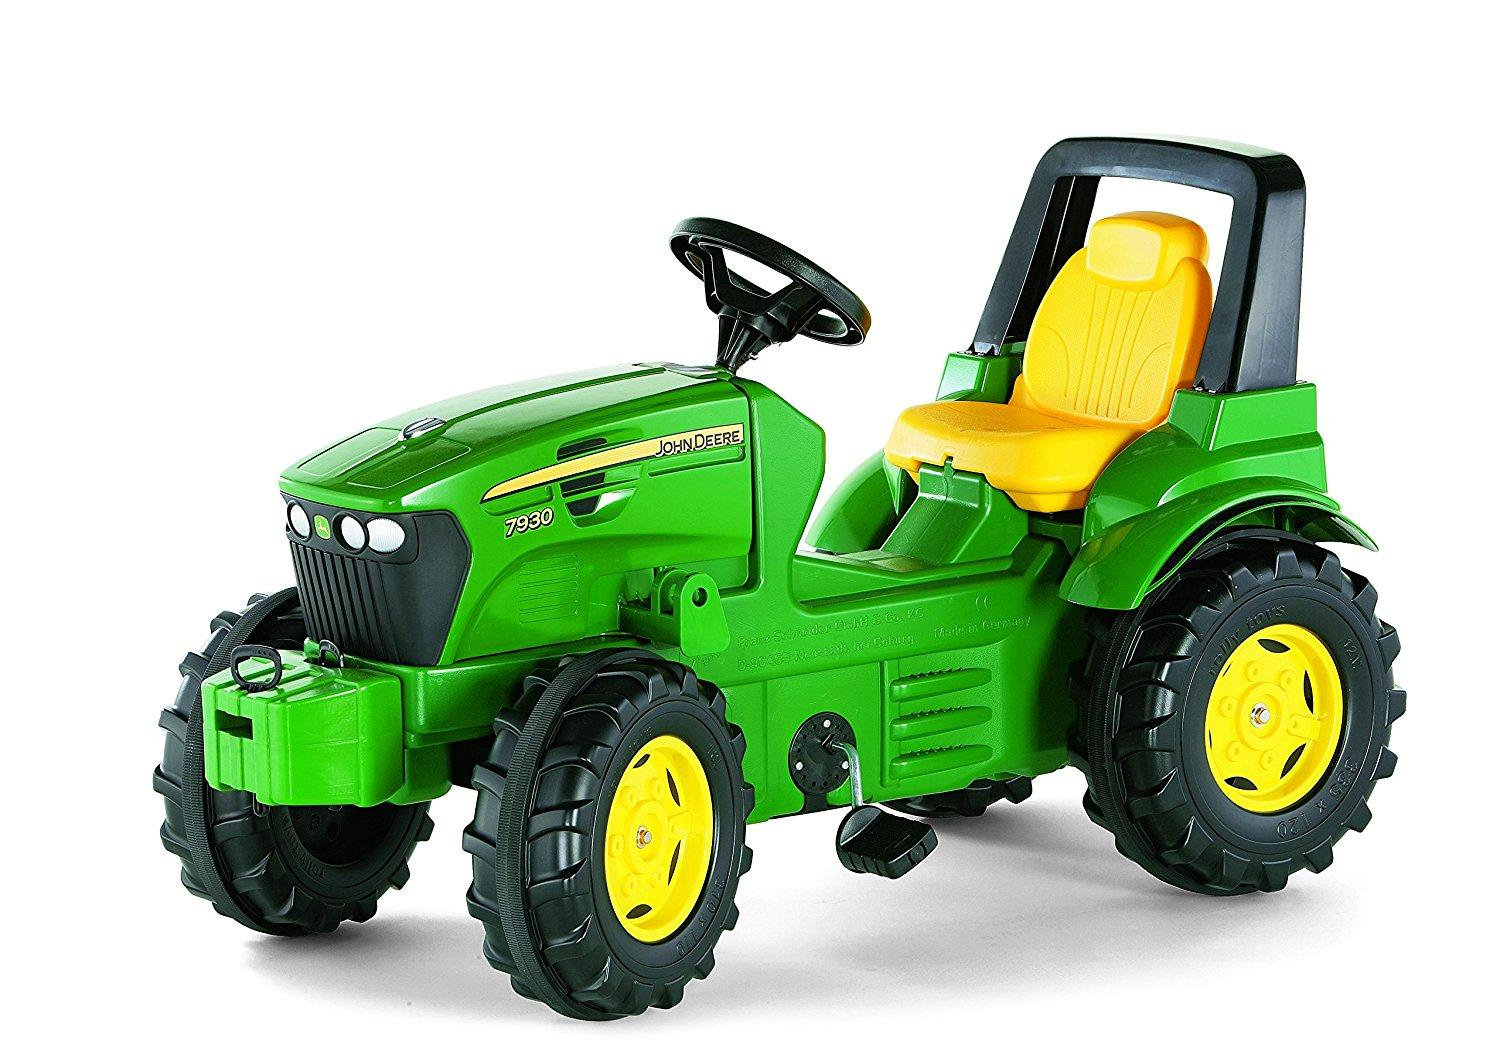 TRATTORE JHON DEERE 7930 700028 ROLLY TOYS